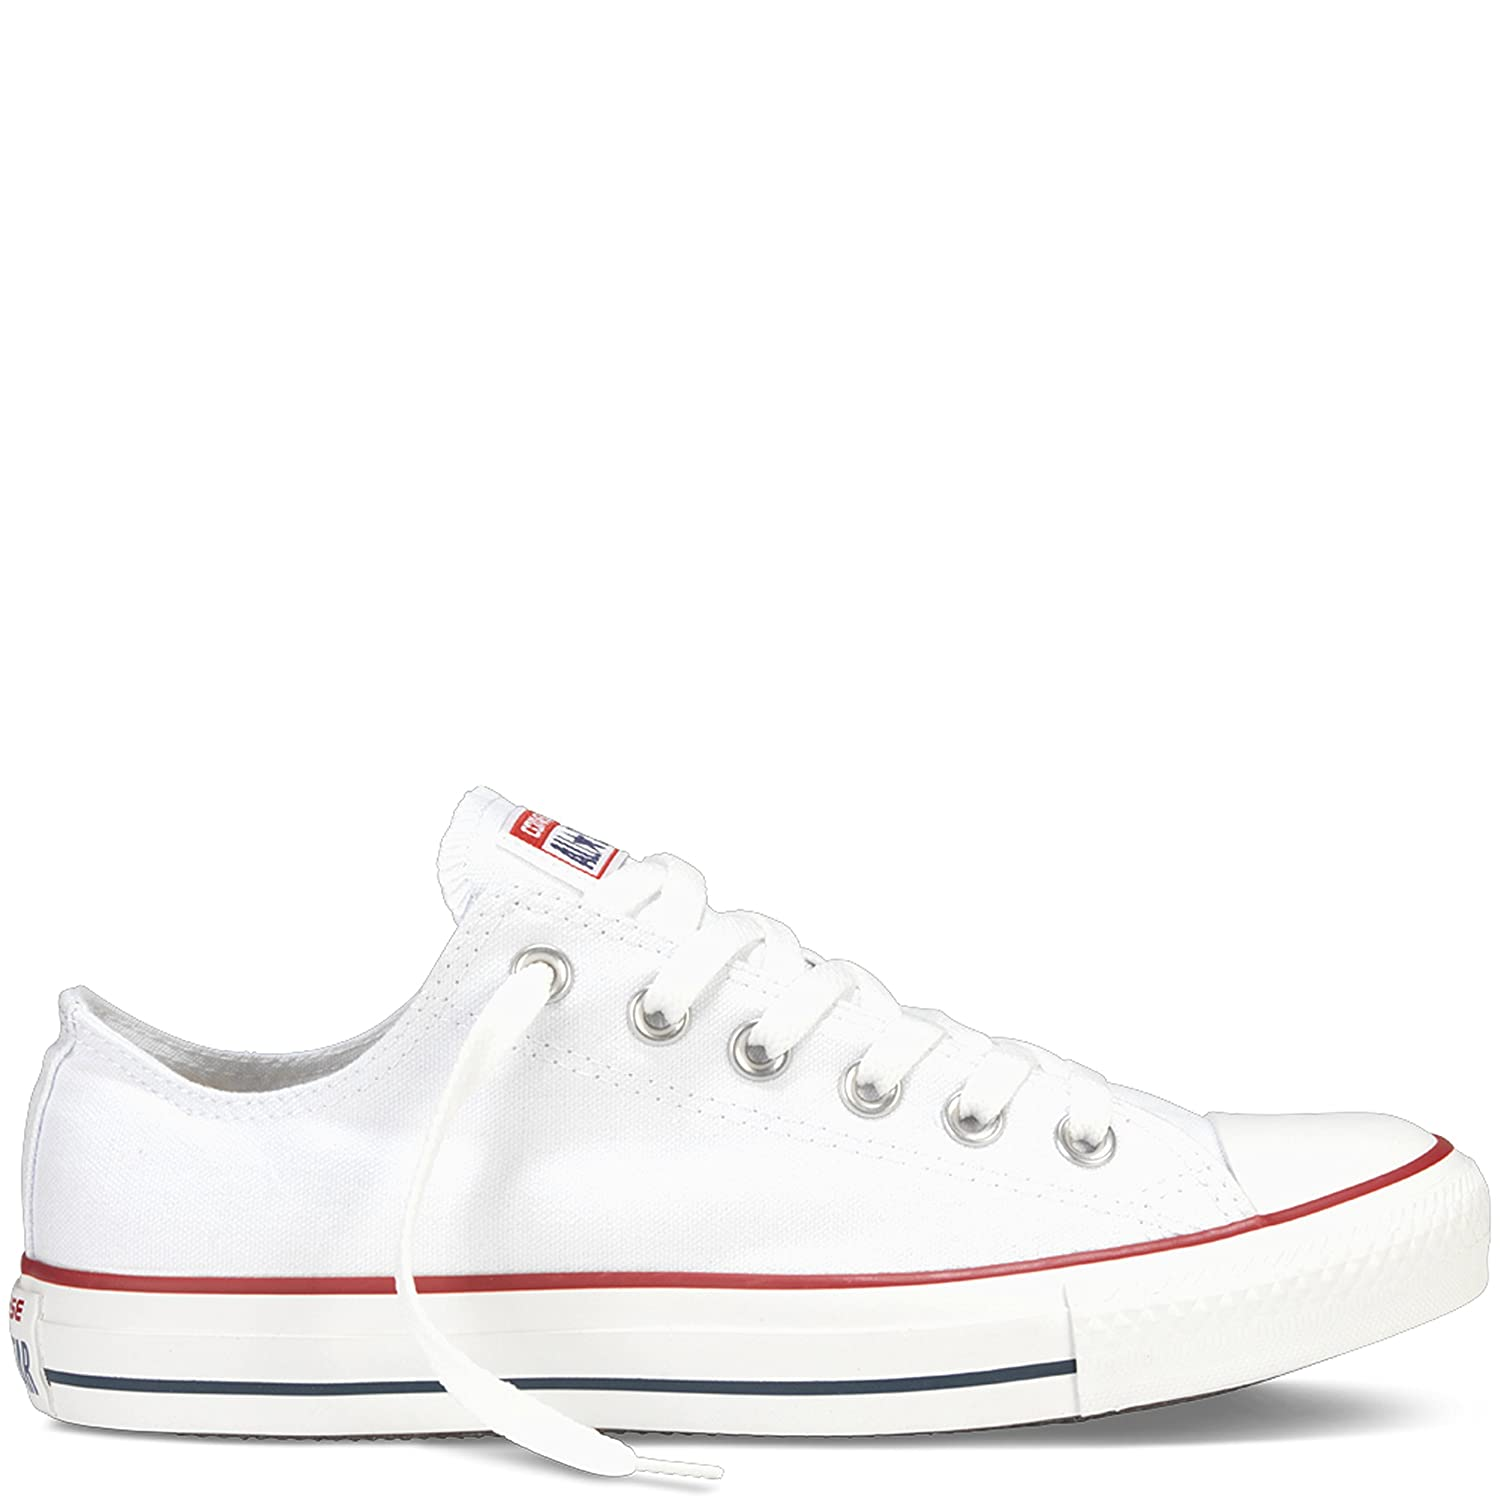 492681a41 Amazon.com | Converse All Star Ox Shoes - White - UK 4 / US Mens 4 / US  Women 6 / EU 36.5 | Fashion Sneakers